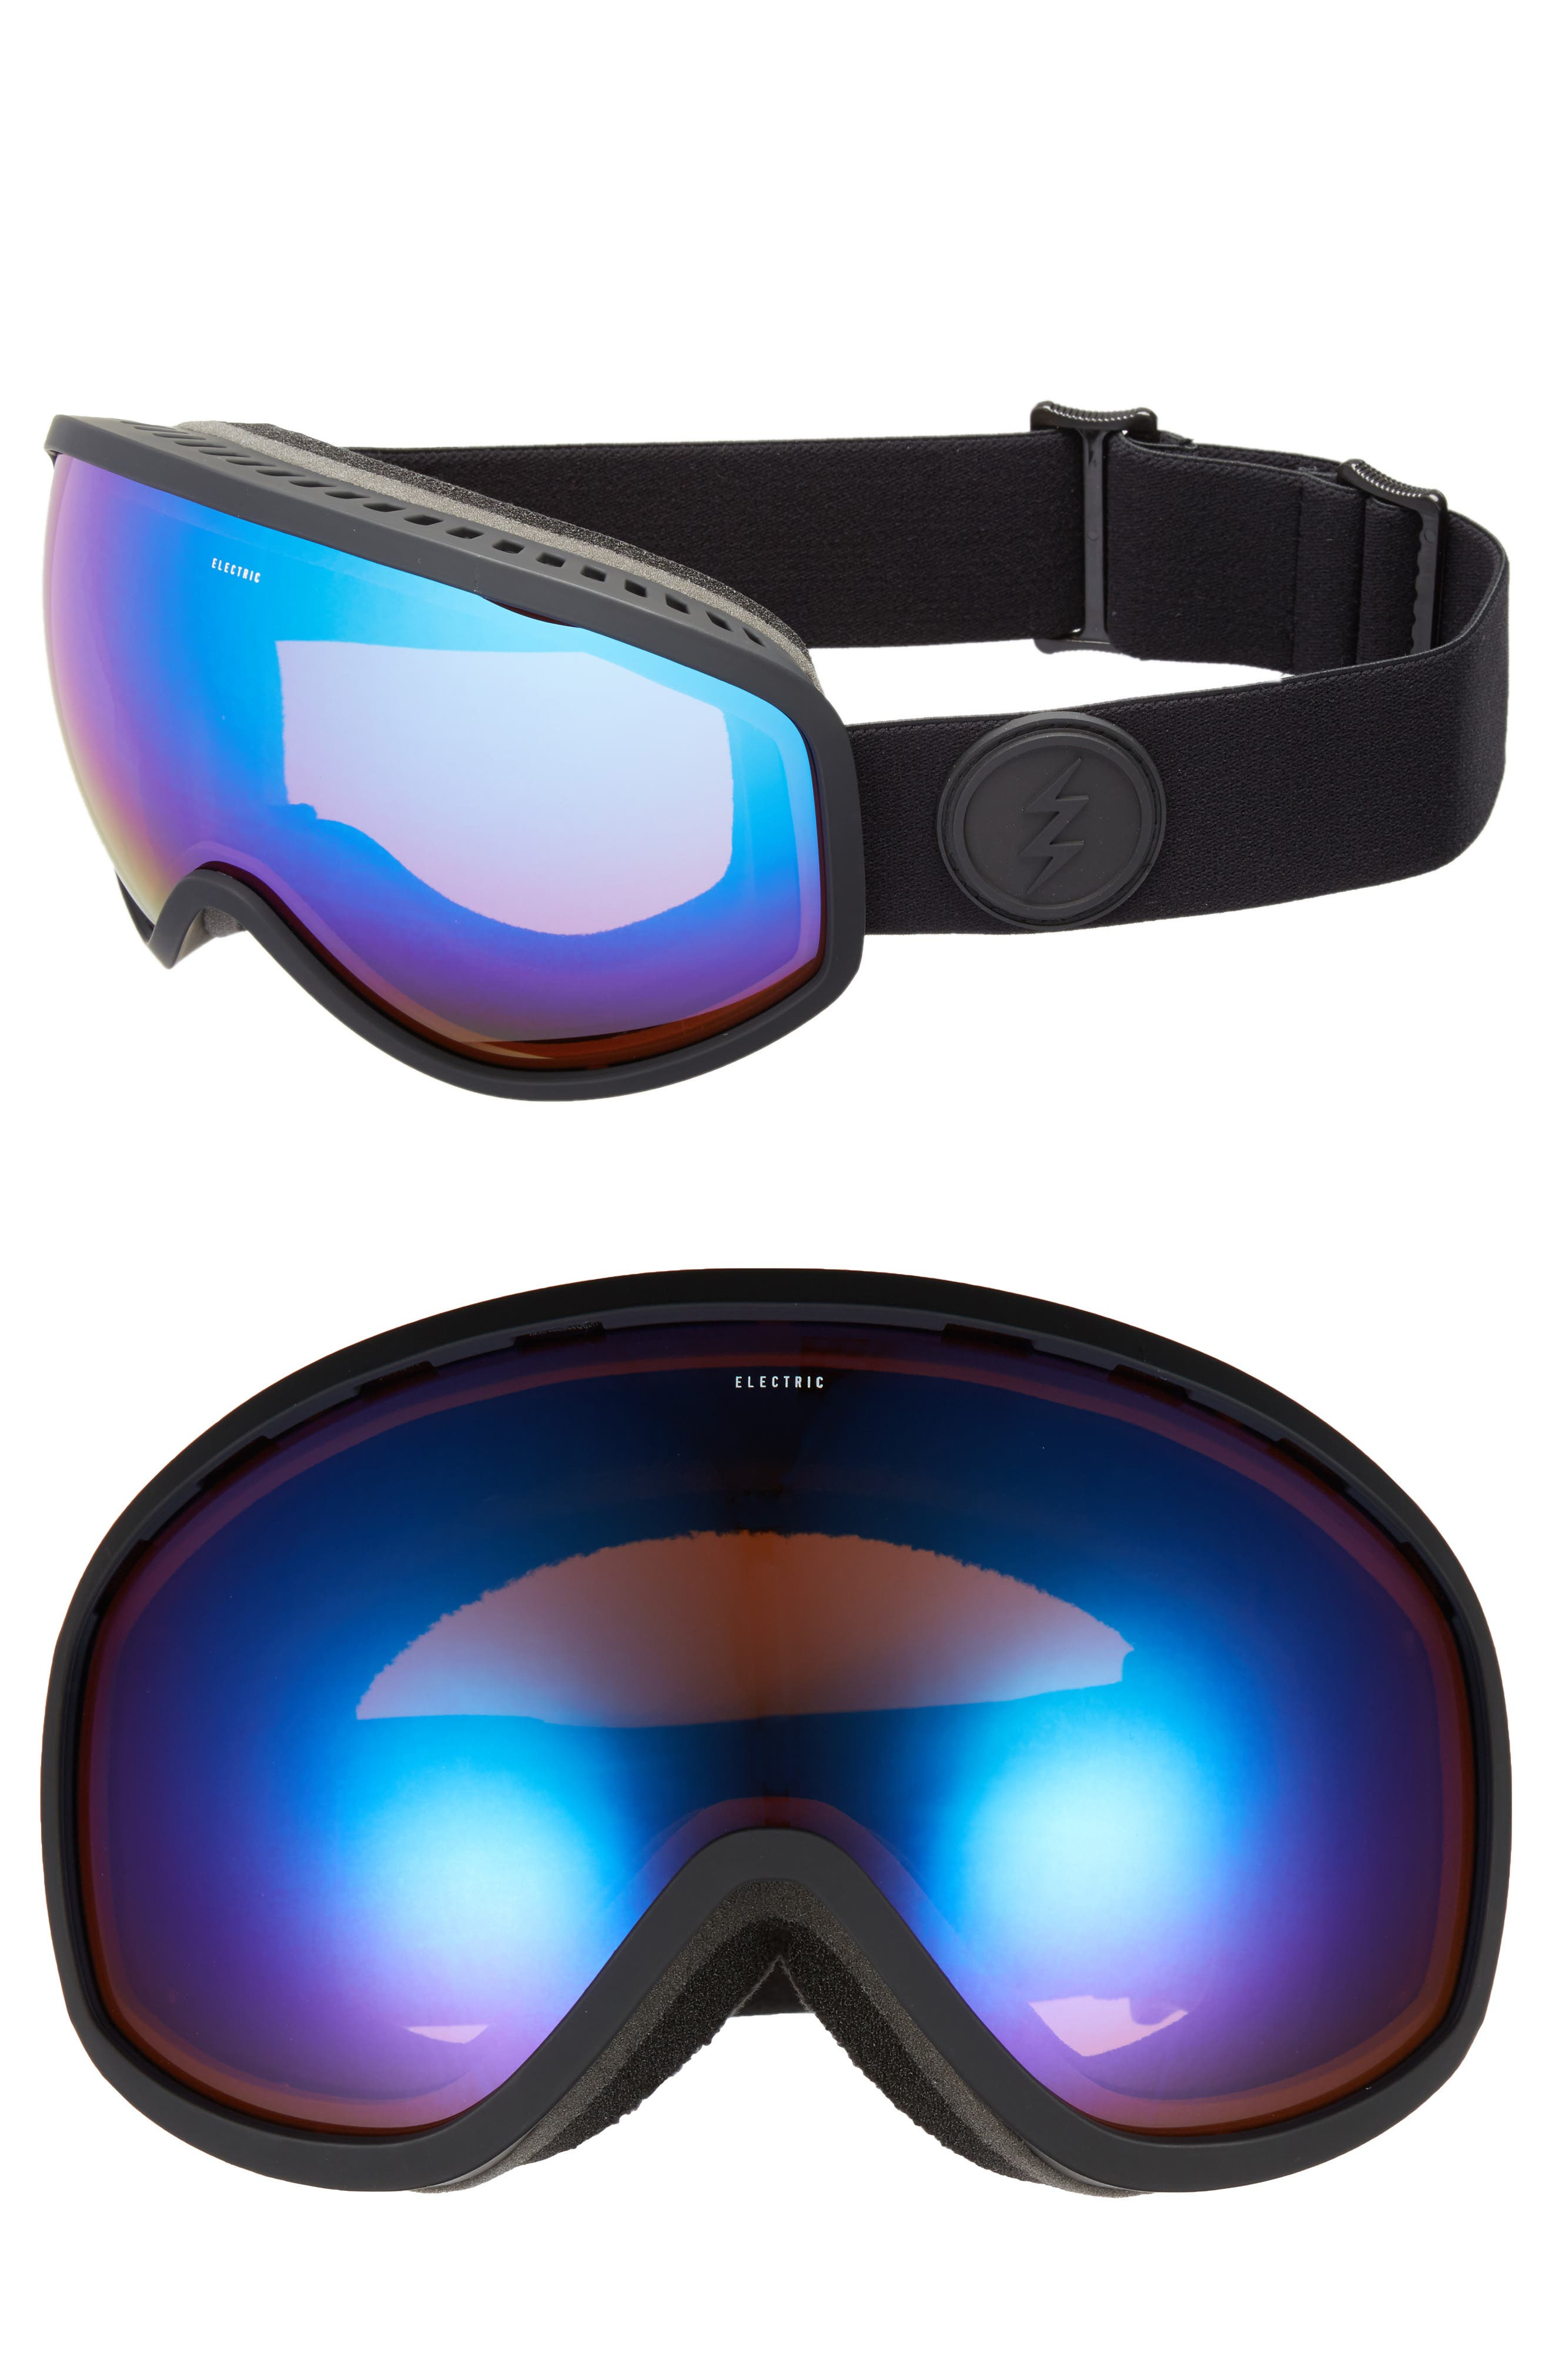 Main Image - ELECTRIC Masher Snow Goggles